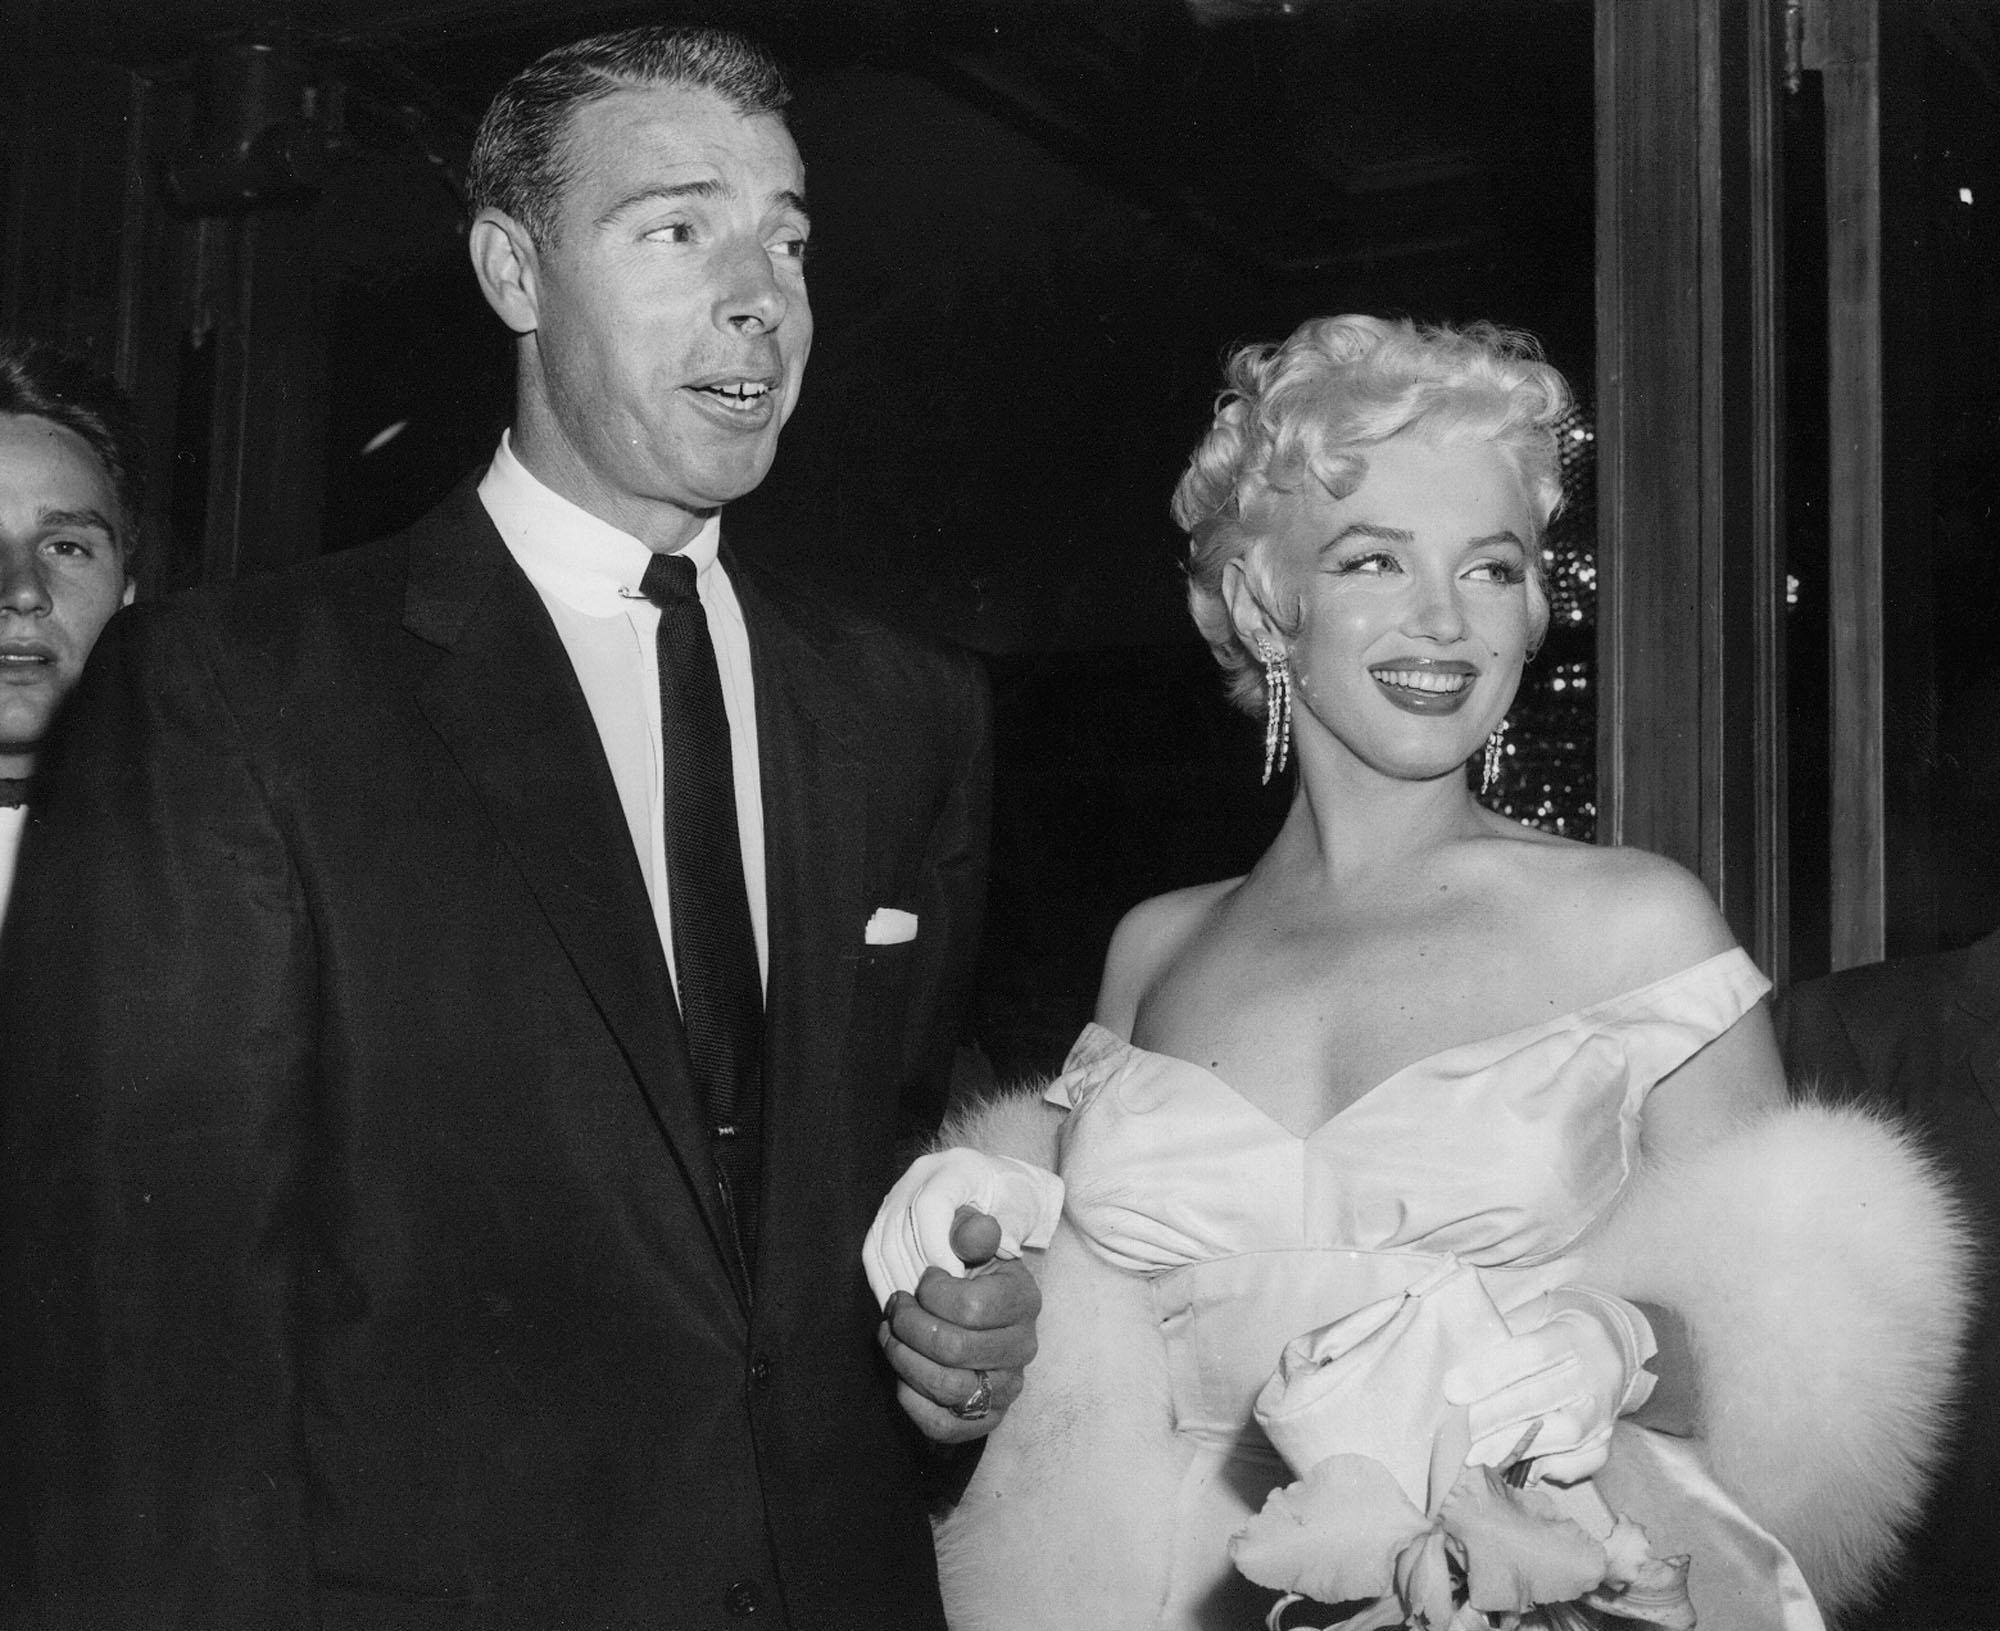 Joe DiMaggios love letter to Marilyn Monroe auctioned for 78K